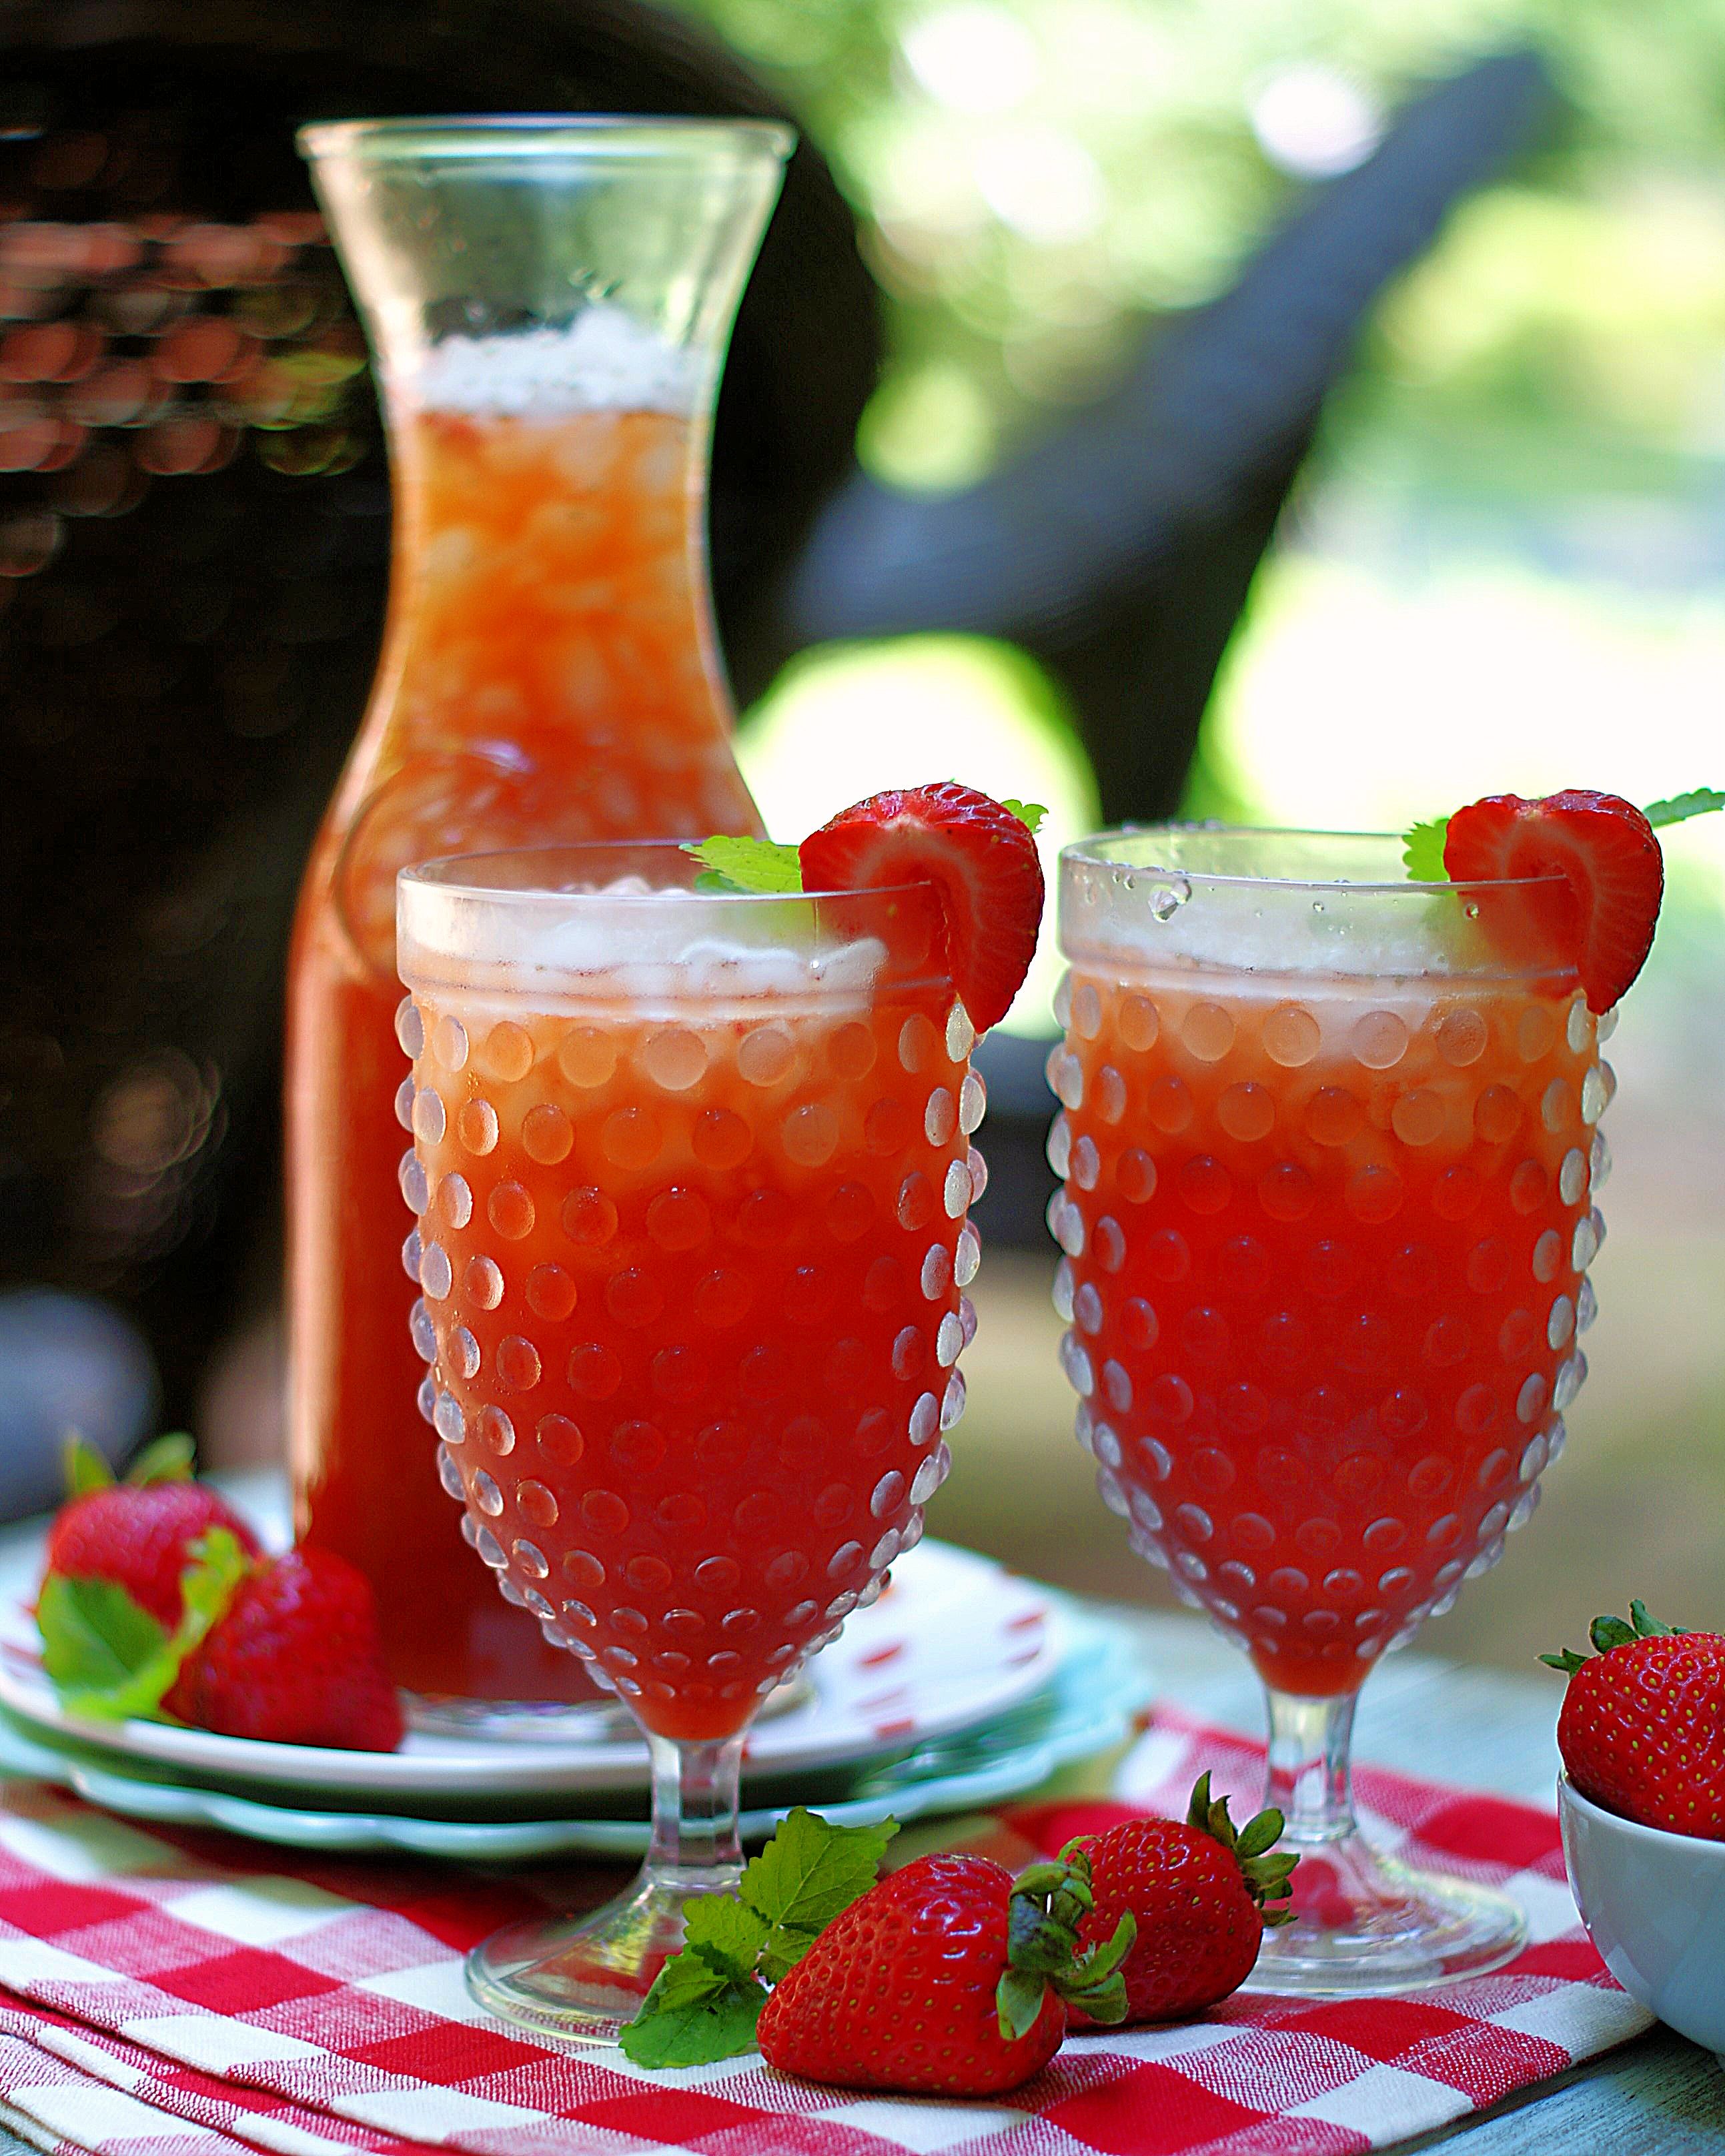 A carafe and 2 glasses of strawberry tea on the patio.